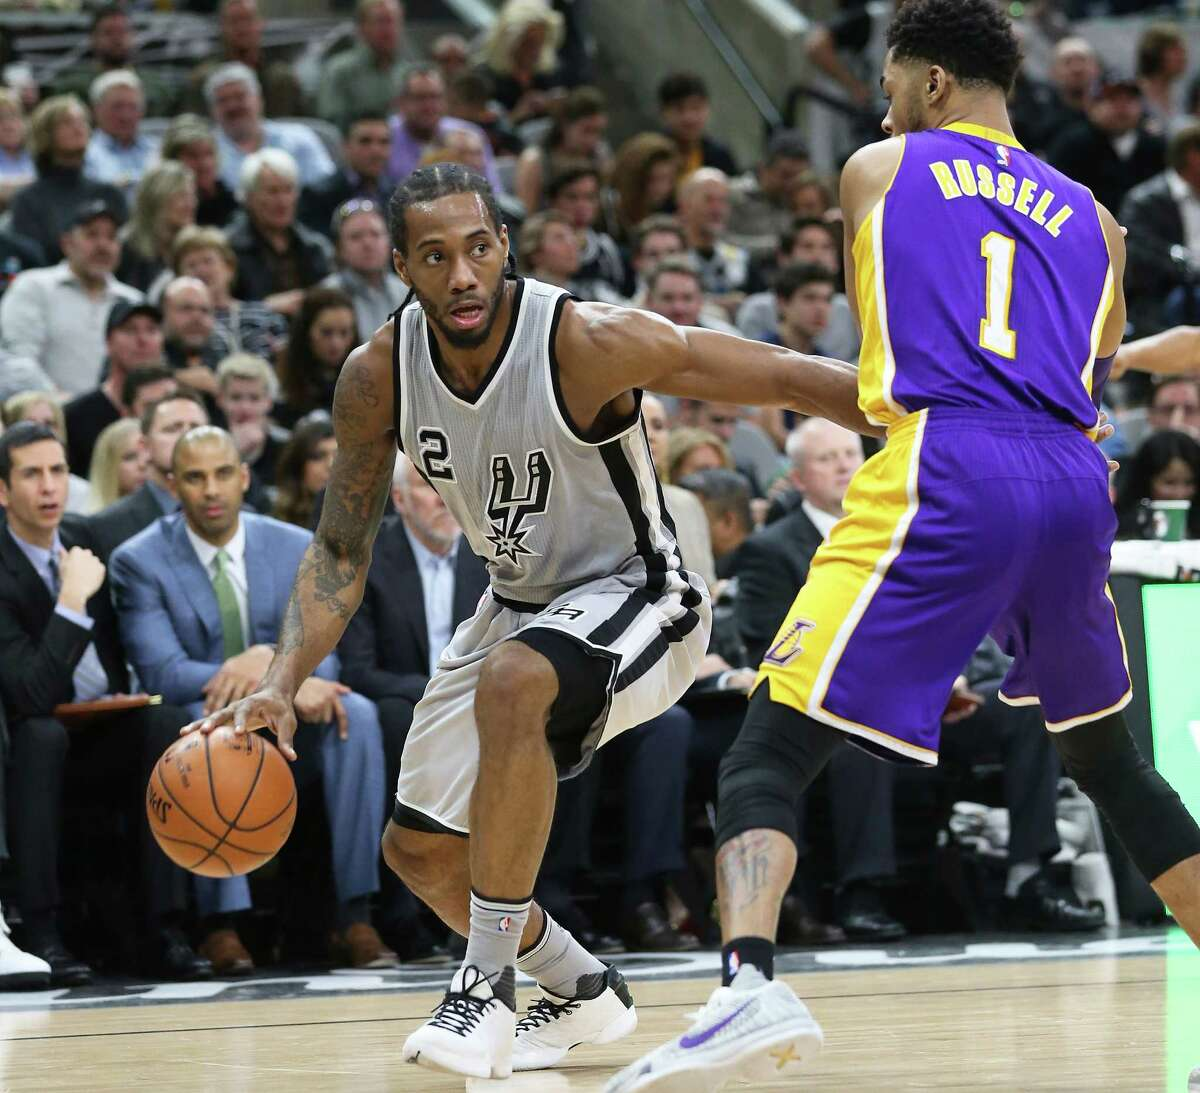 Kawhi Leonard studies the court behind defender D'Angelo Russell as the Spurs host the Lakers at the AT&T Center on February 6, 2016.